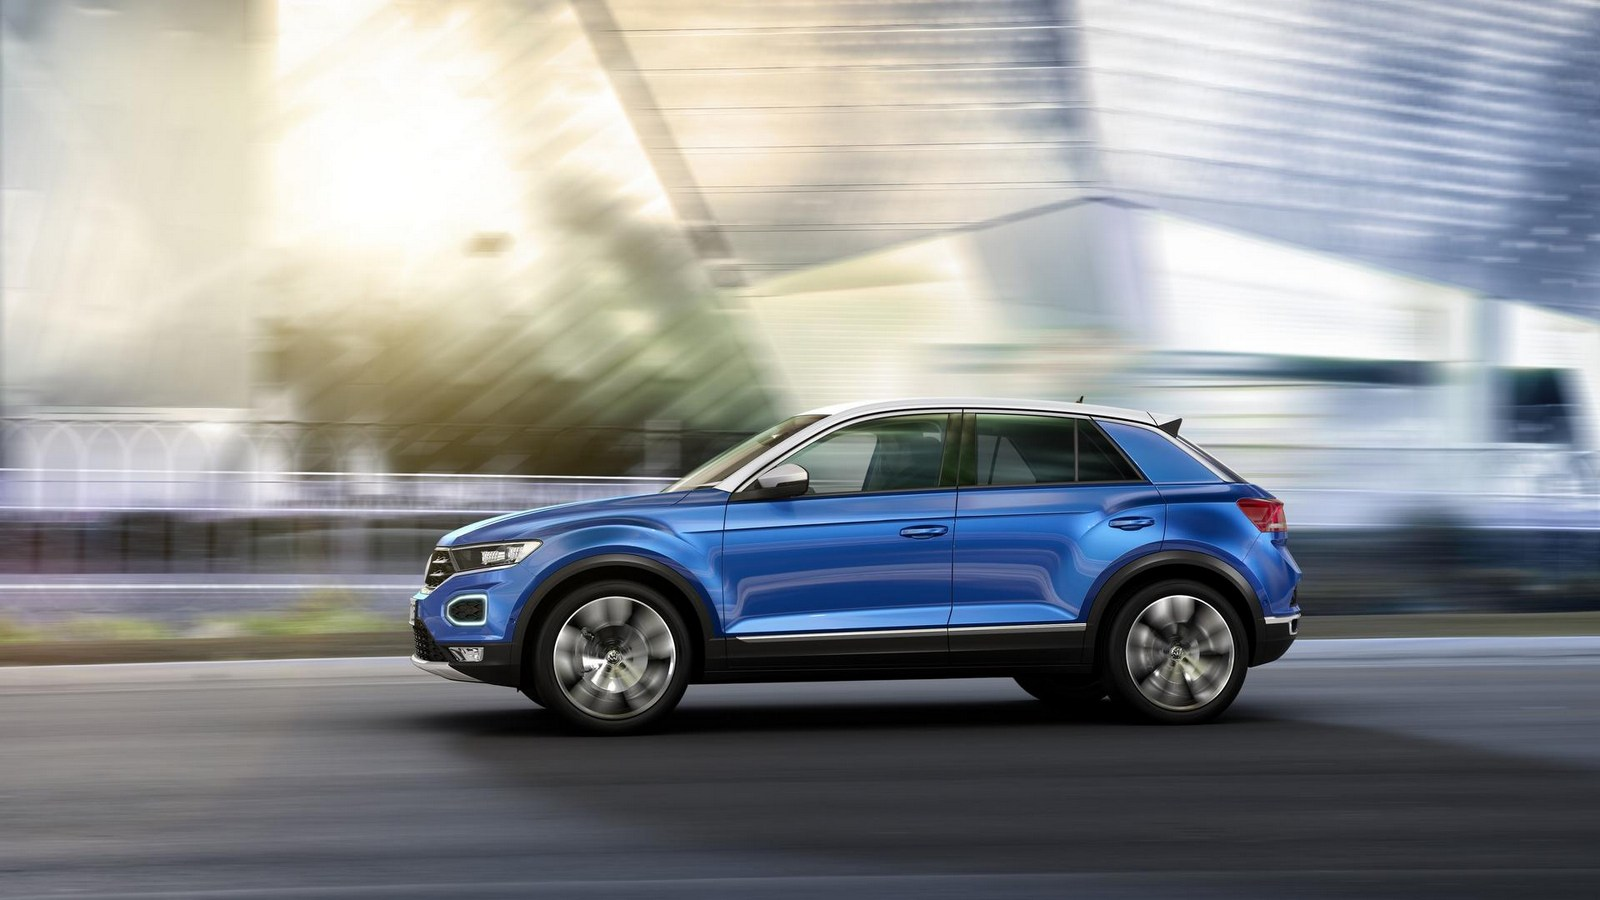 volkswagen 39 s t roc looks to rock the compact crossover market carscoops. Black Bedroom Furniture Sets. Home Design Ideas